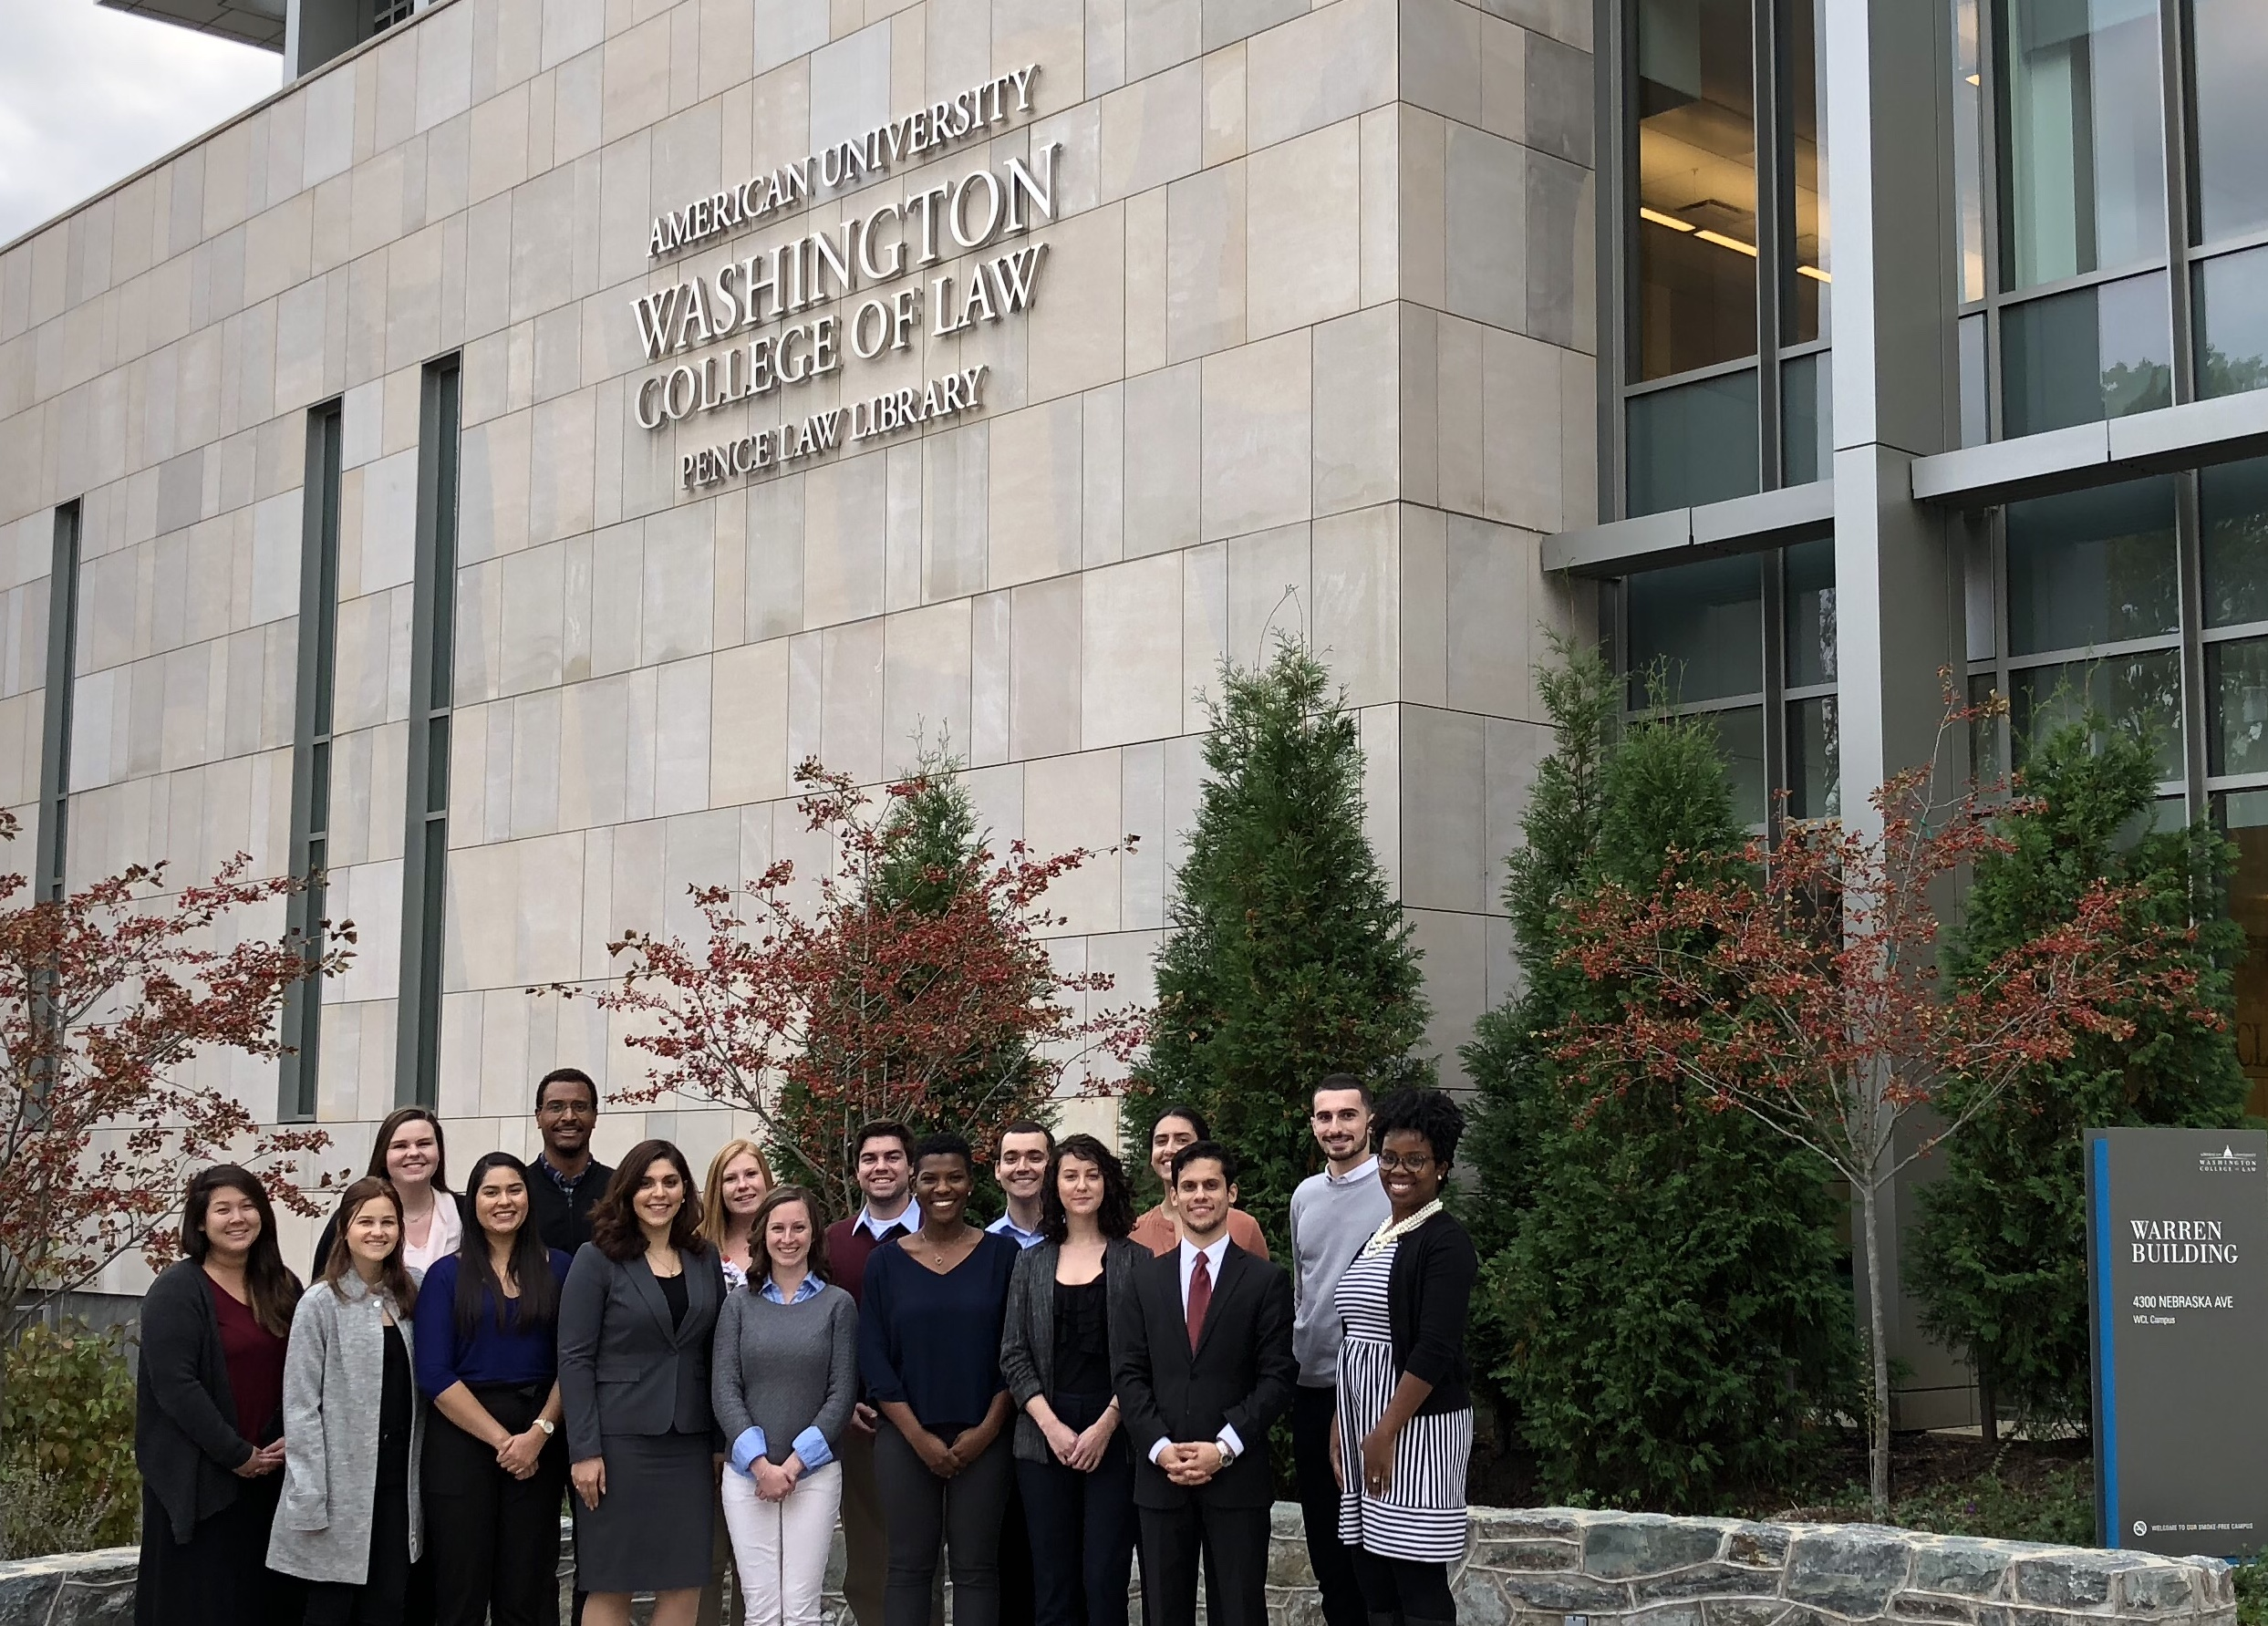 Students in front of Pence Law Library